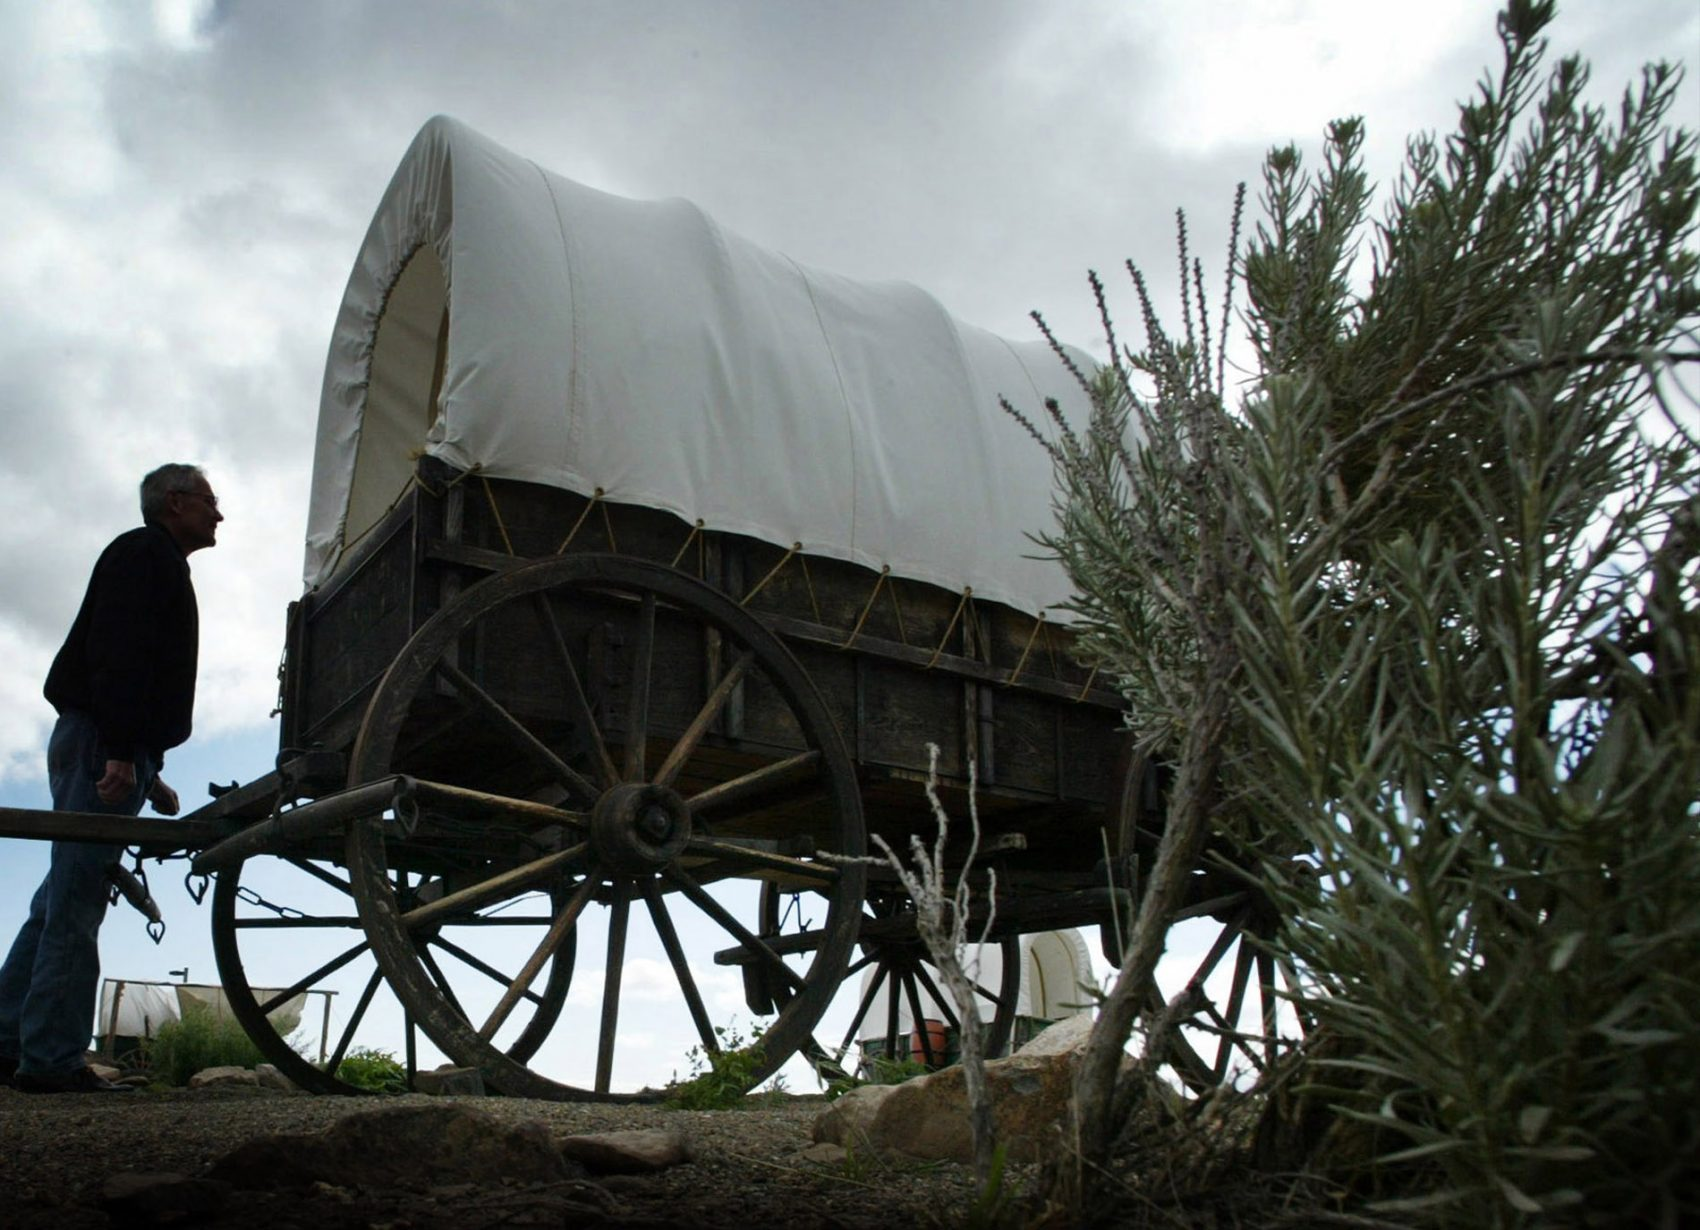 Over A Century Later Oregon Trail Sees New Travelers Take